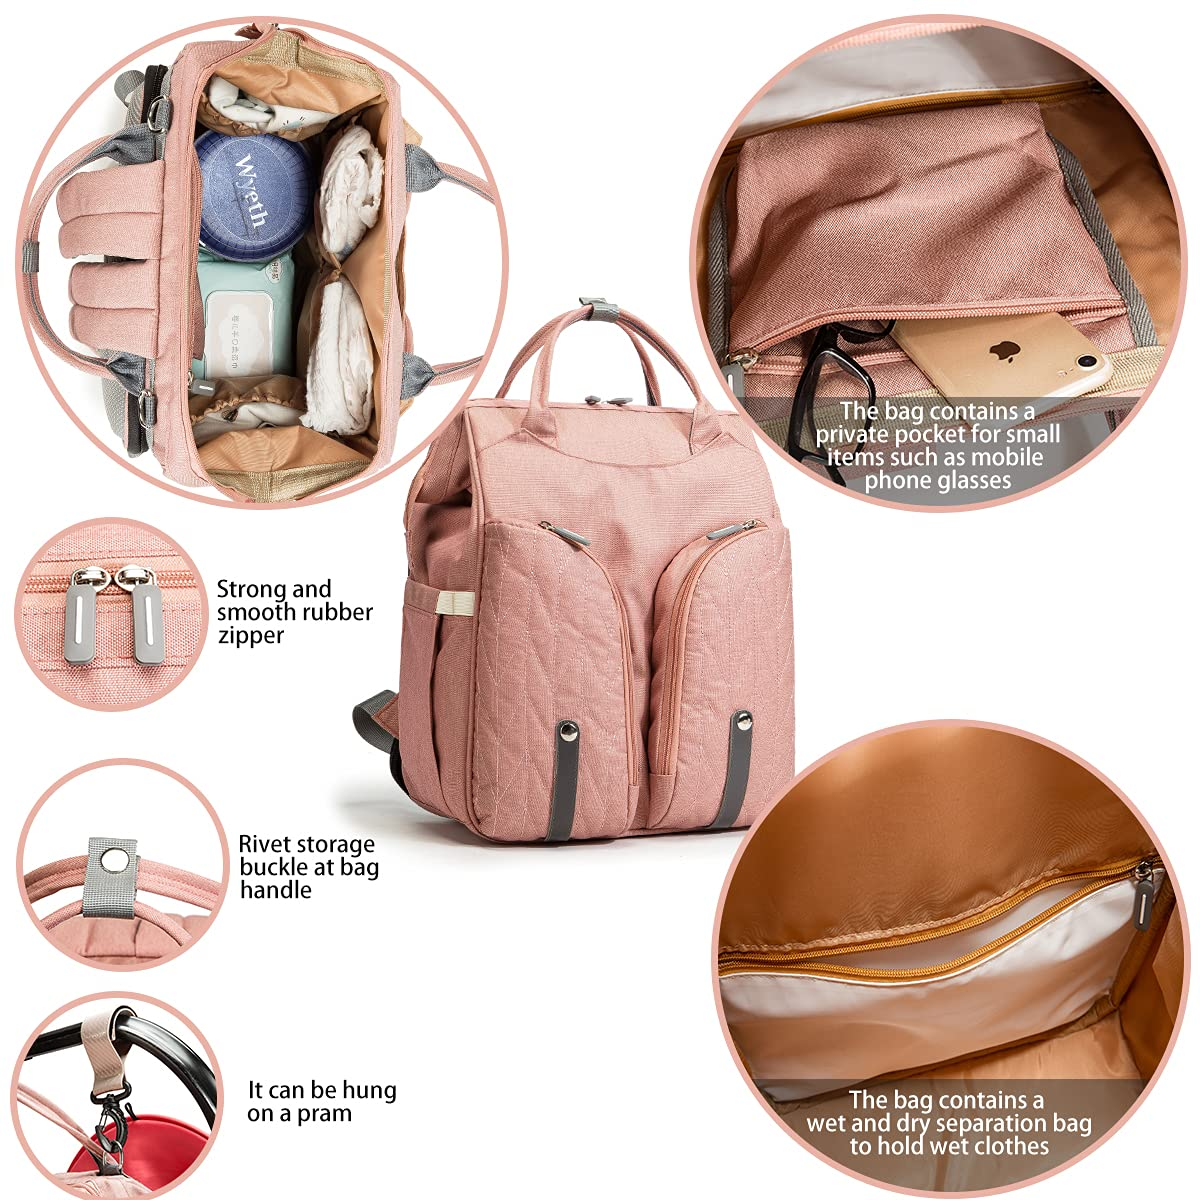 Diaper Bag Backpack, FKNZUA Multifunctional Baby Folding Bed Travel Backpack, Mammy Diaper Bag Large Capacity, Waterproof and Stylish, Pink